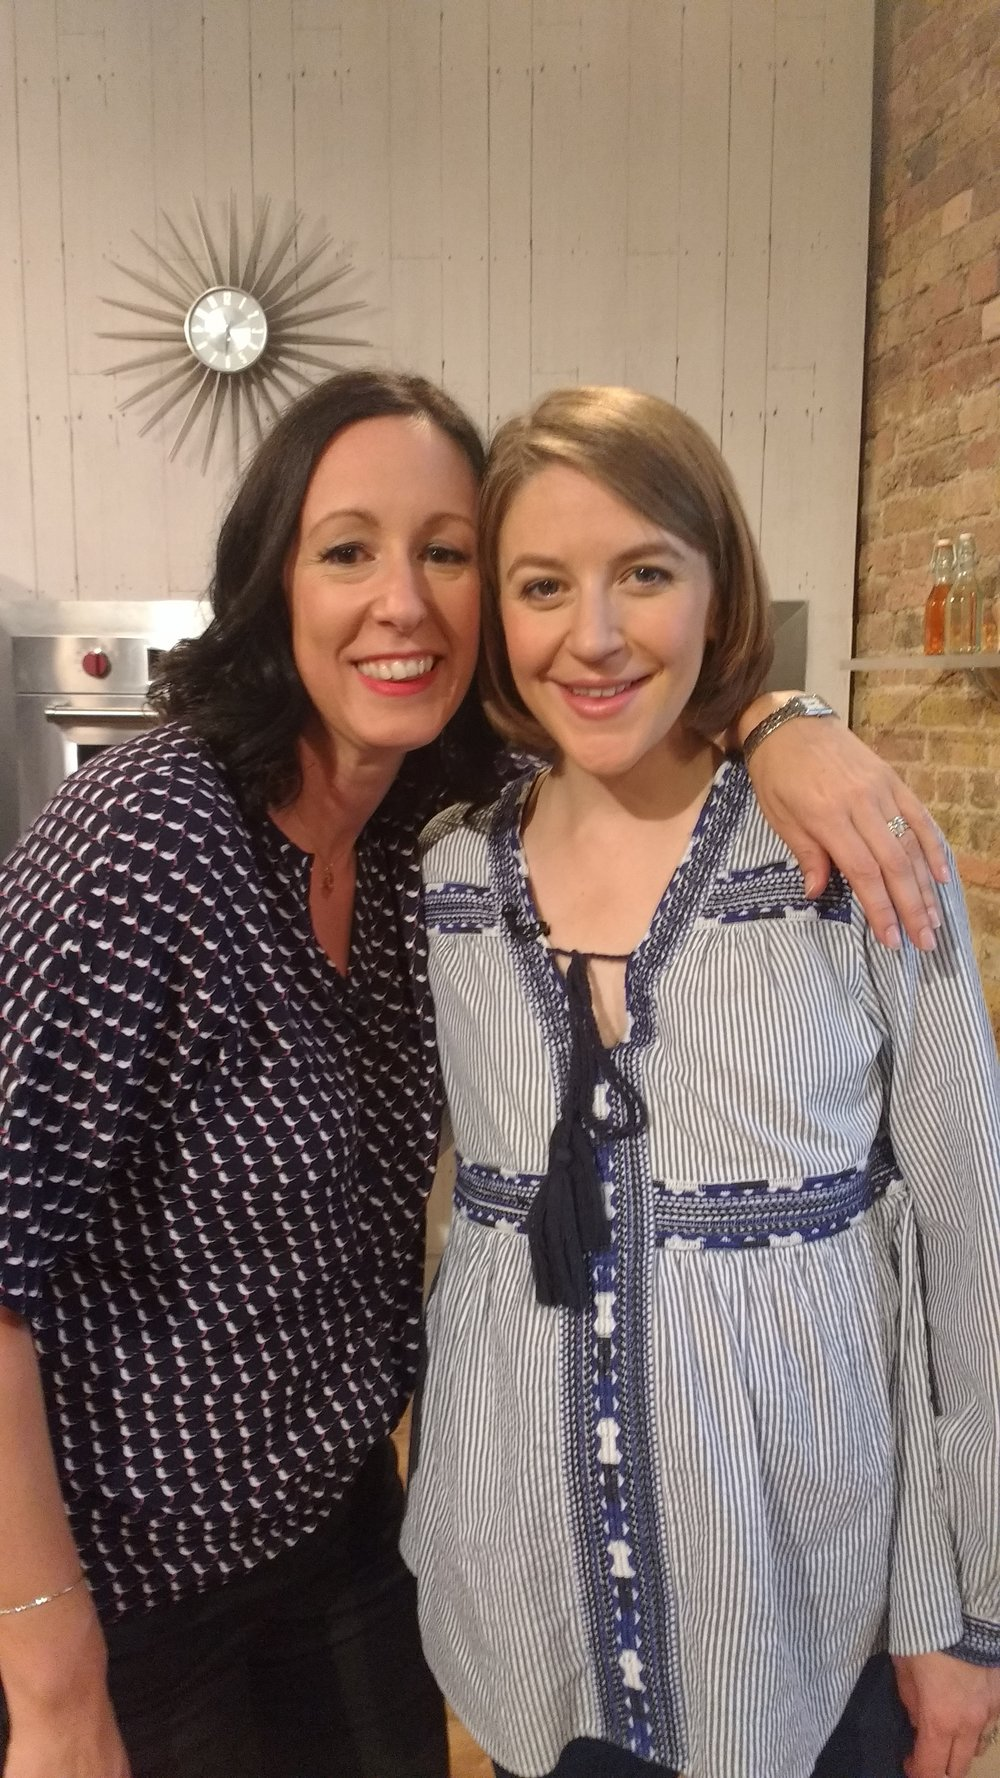 Sam with Gemma Whelan